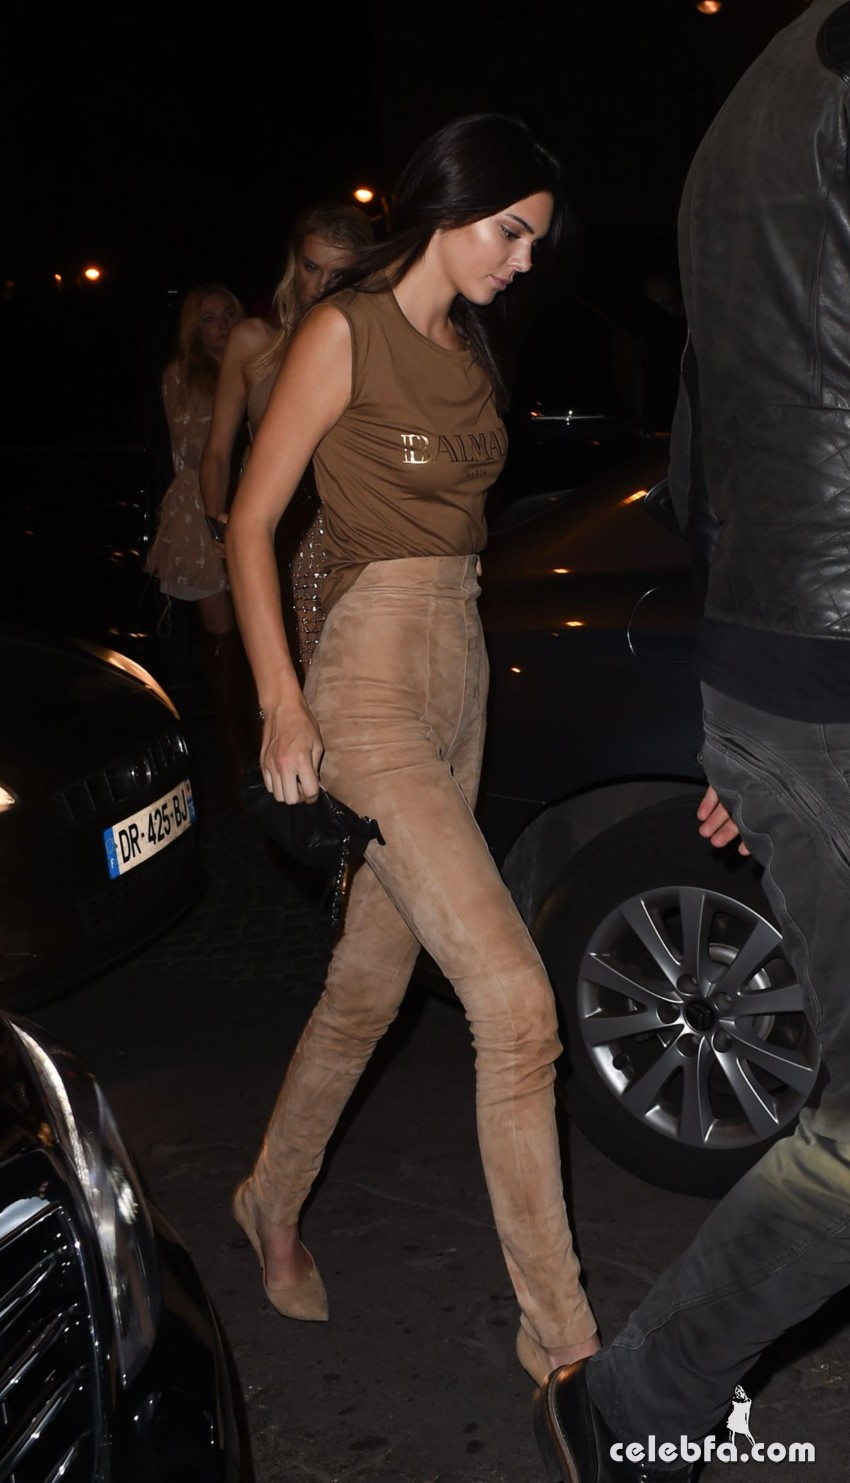 kendall-jenner-at-balmain-fashion-show-after-party-in-paris (2)